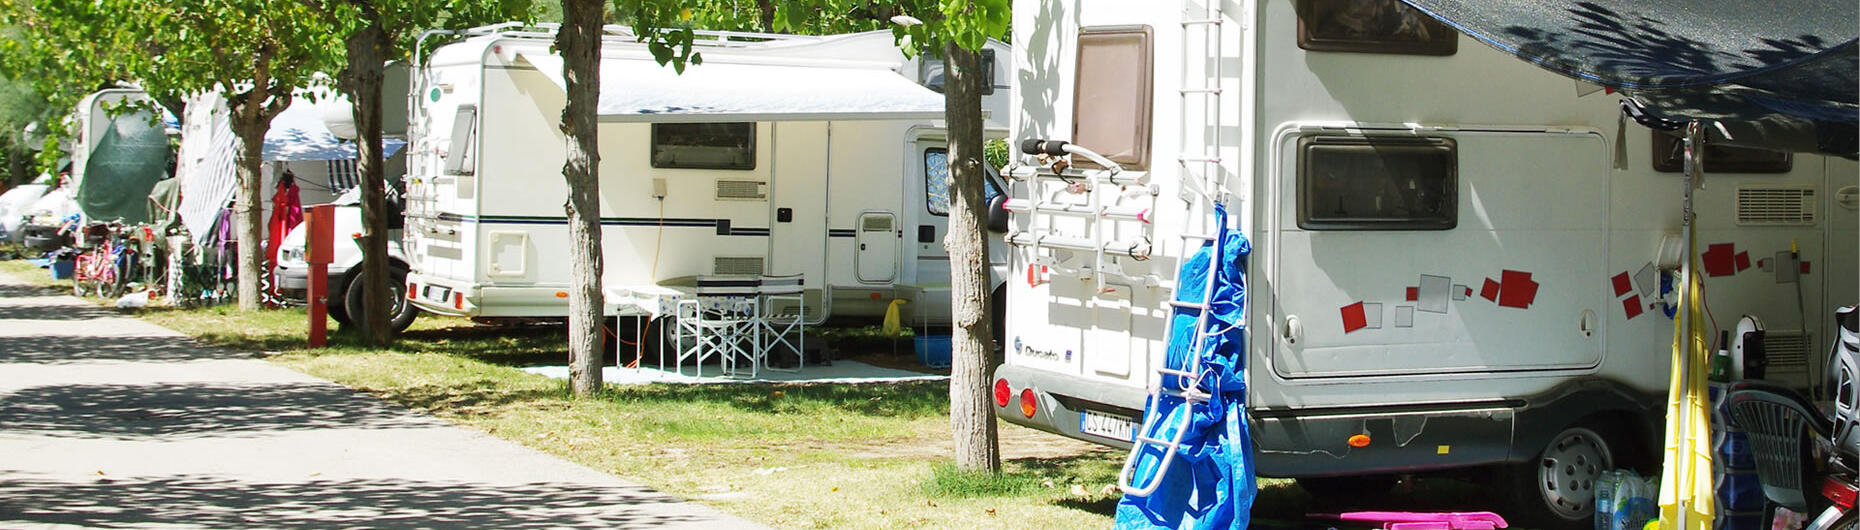 vacanzespinnaker fr camping-dans-marches 005